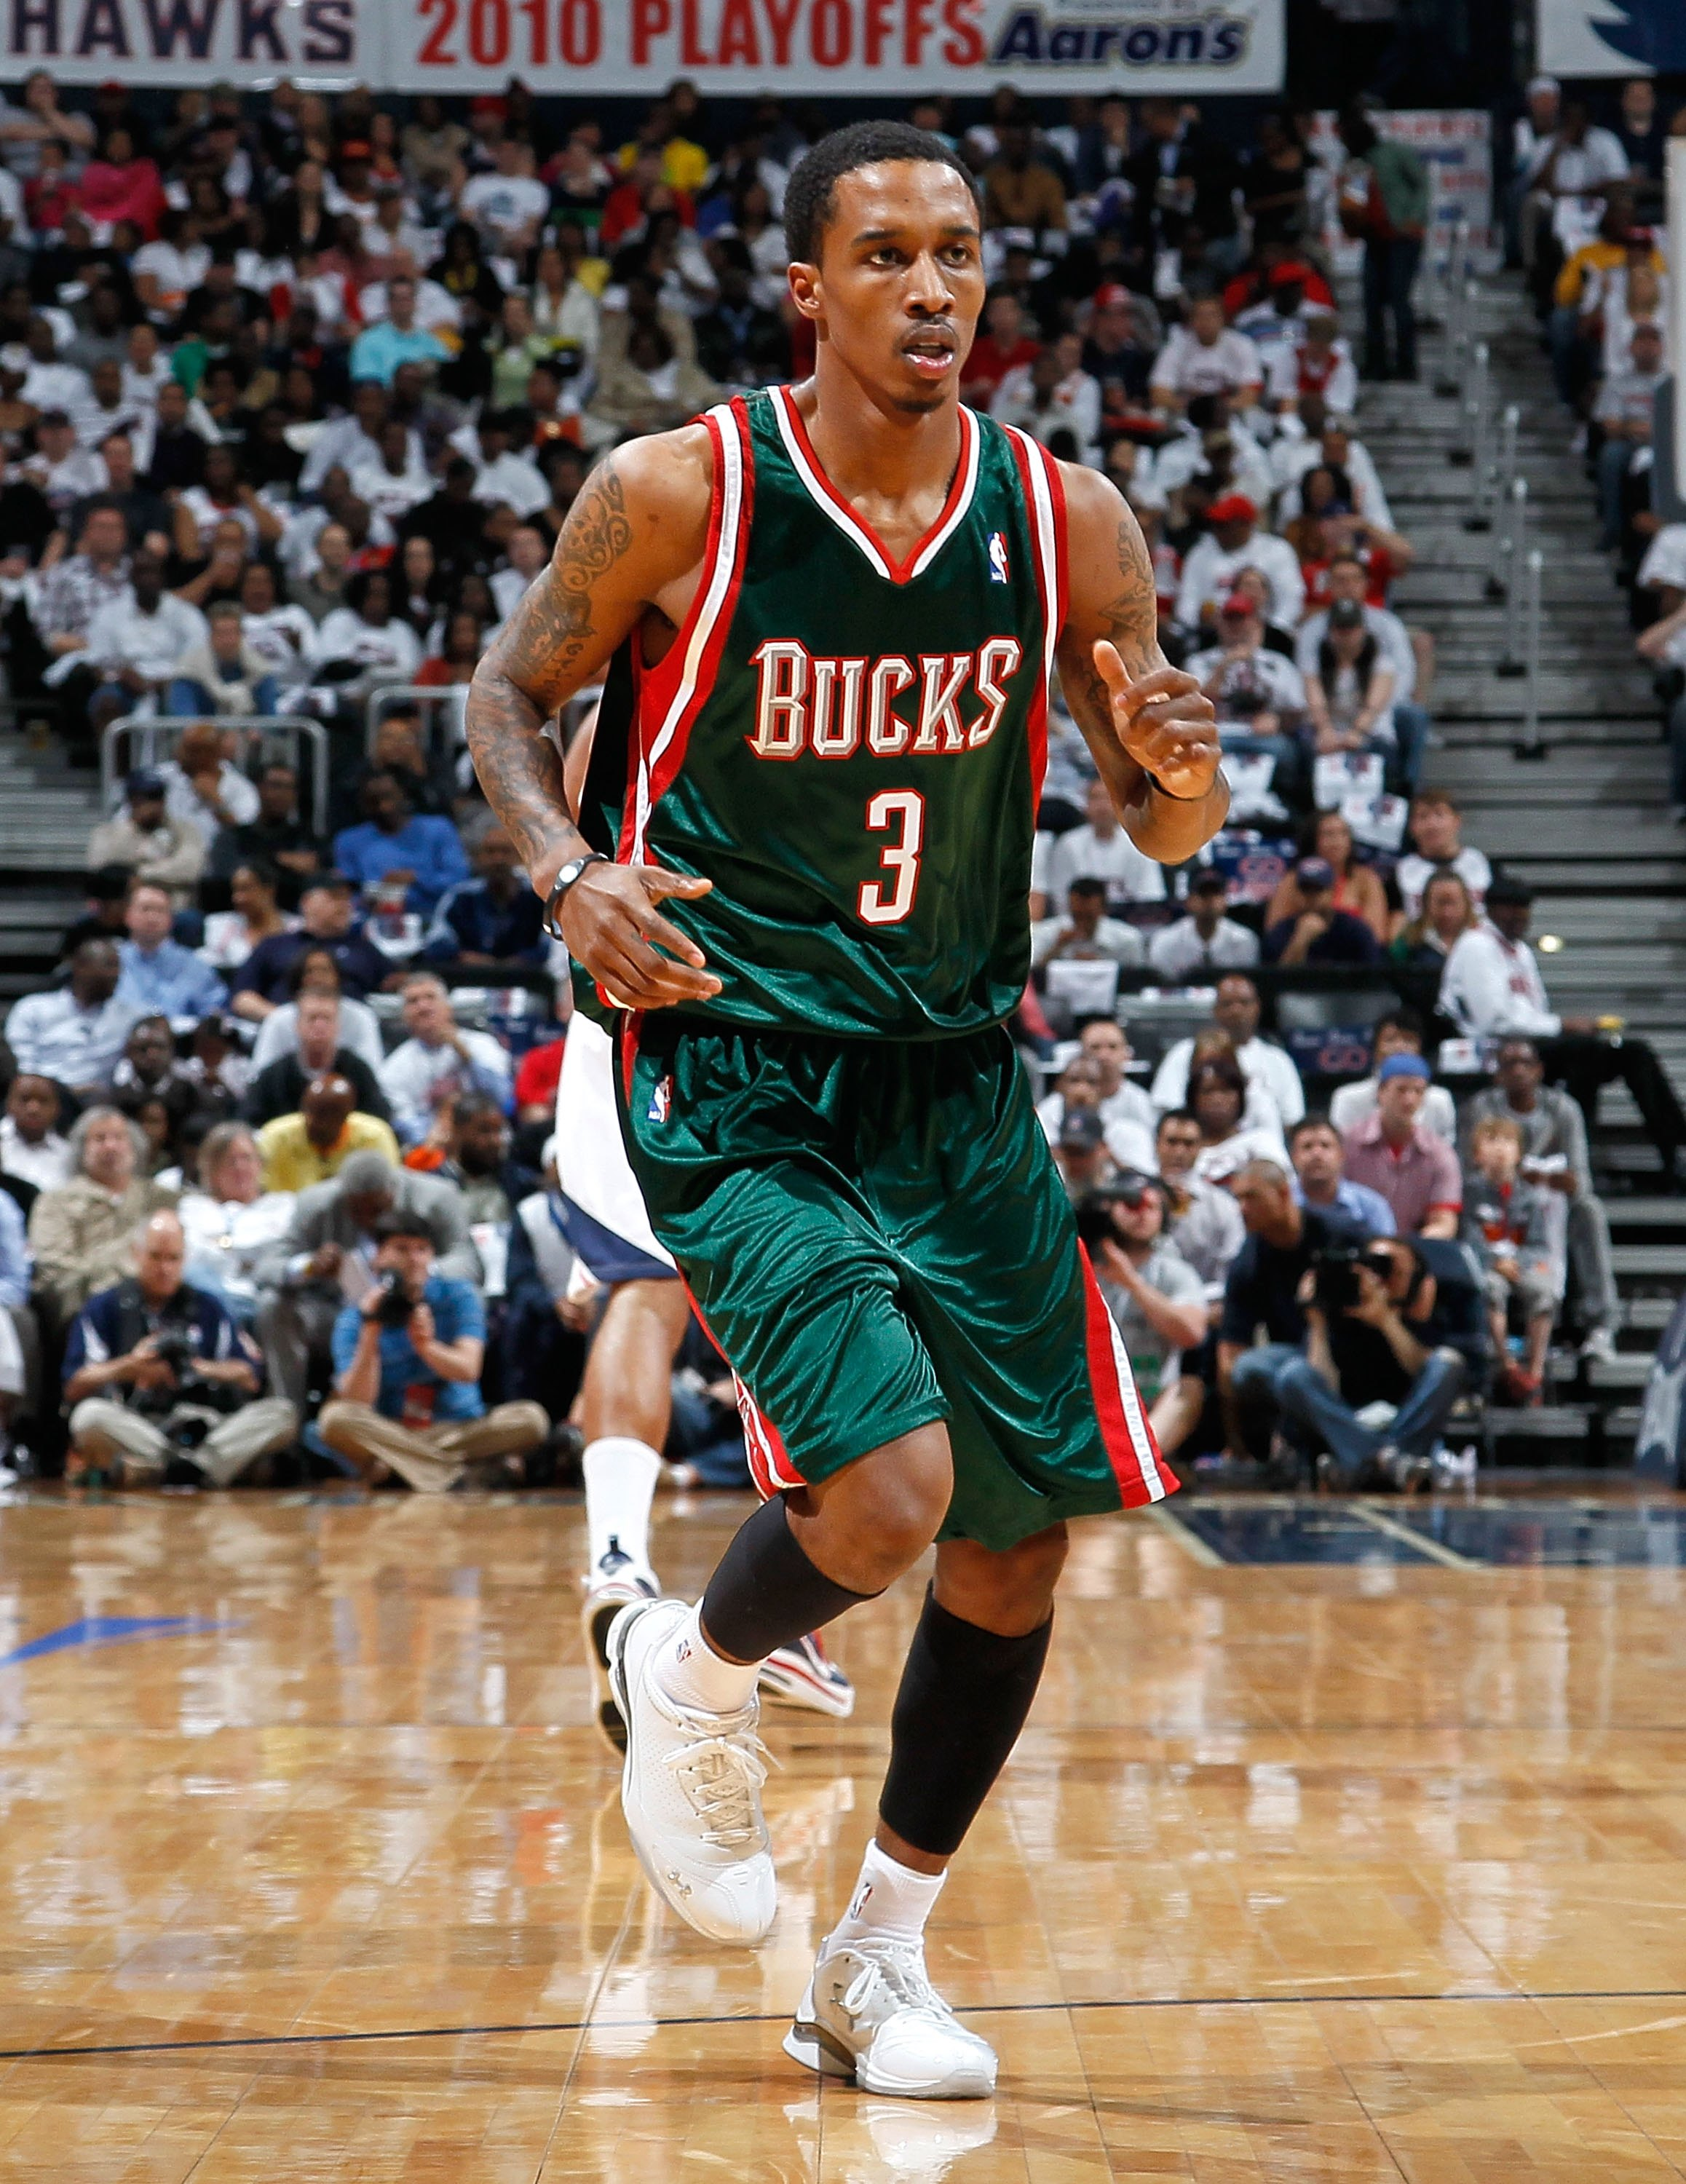 ATLANTA - APRIL 28:  Brandon Jennings #3 of the Milwaukee Bucks against the Atlanta Hawks during Game Five of the Eastern Conference Quarterfinals of the 2010 NBA Playoffs at Philips Arena on April 28, 2010 in Atlanta, Georgia.  NOTE TO USER: User express